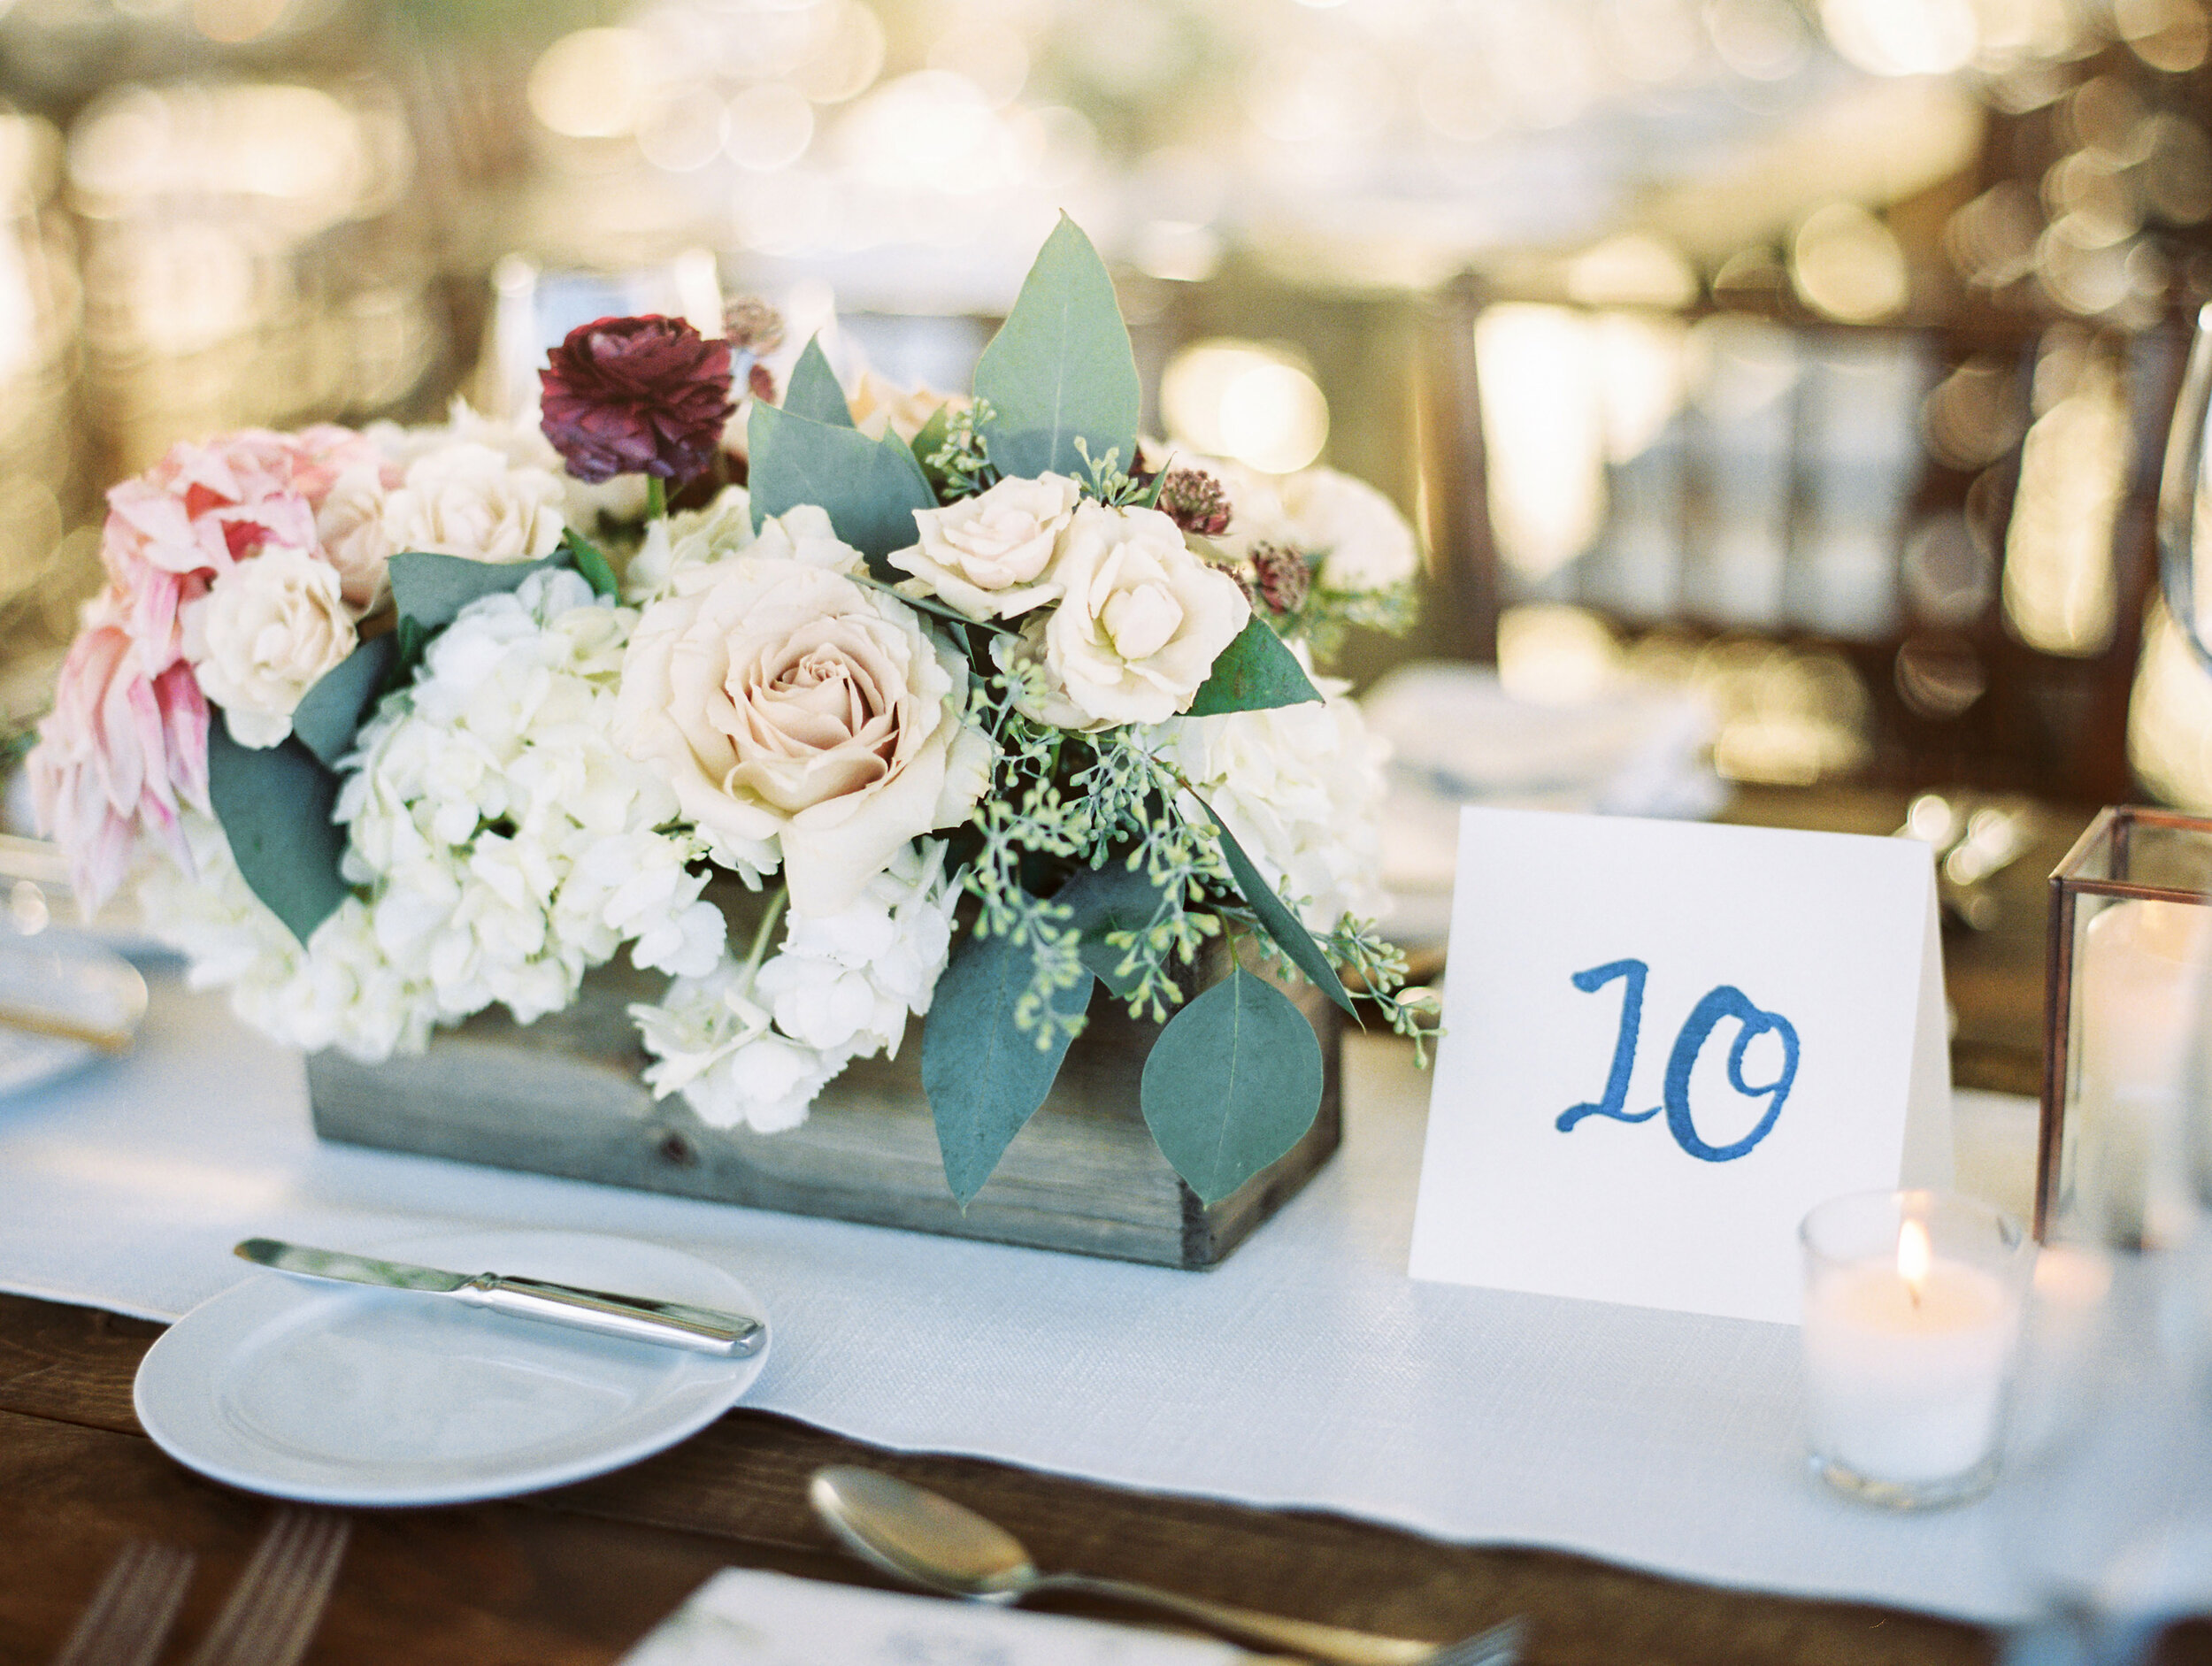 Flowers by Fleur Inc, Photo by Olivia Leigh Photographie, Planning by Estera Events, Centerpieces